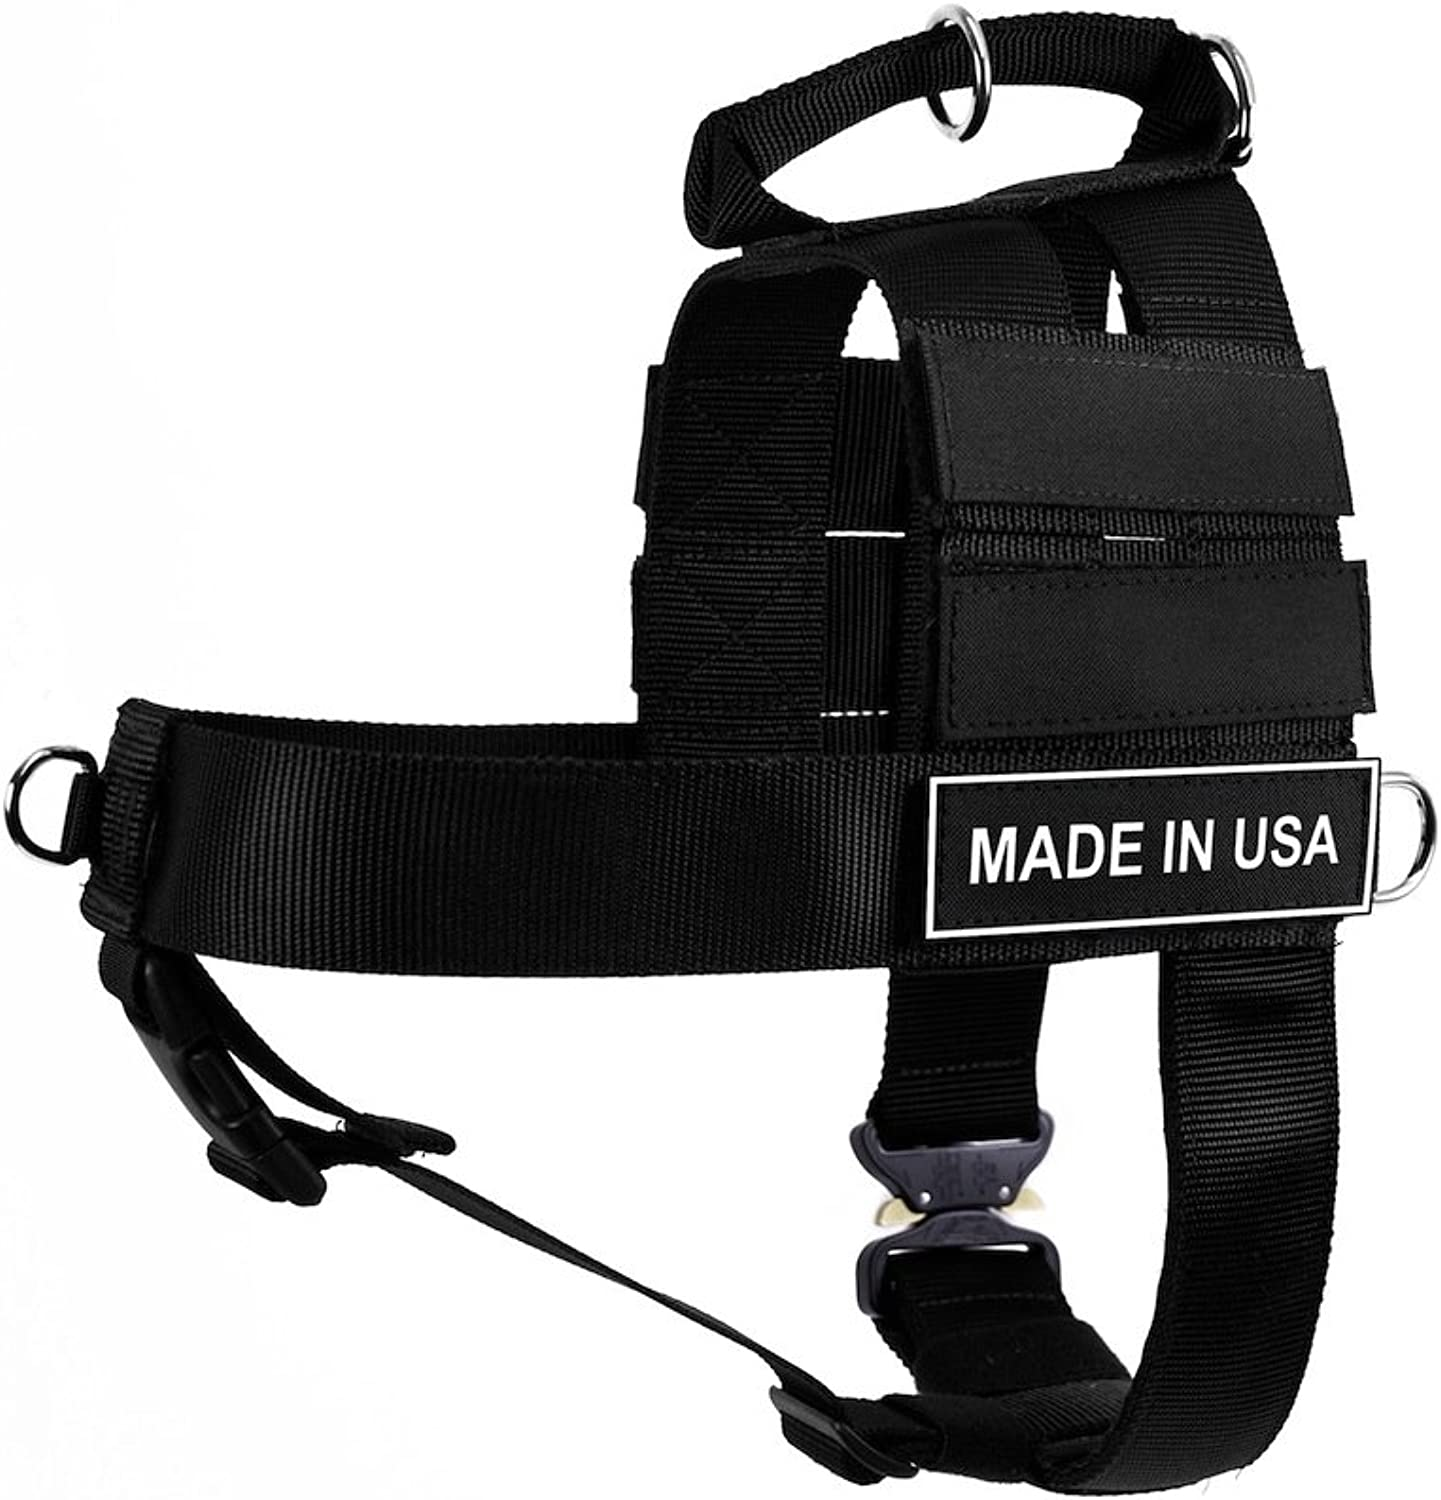 Dean & Tyler DT Cobra Made in USA No Pull Harness, XLarge, Black